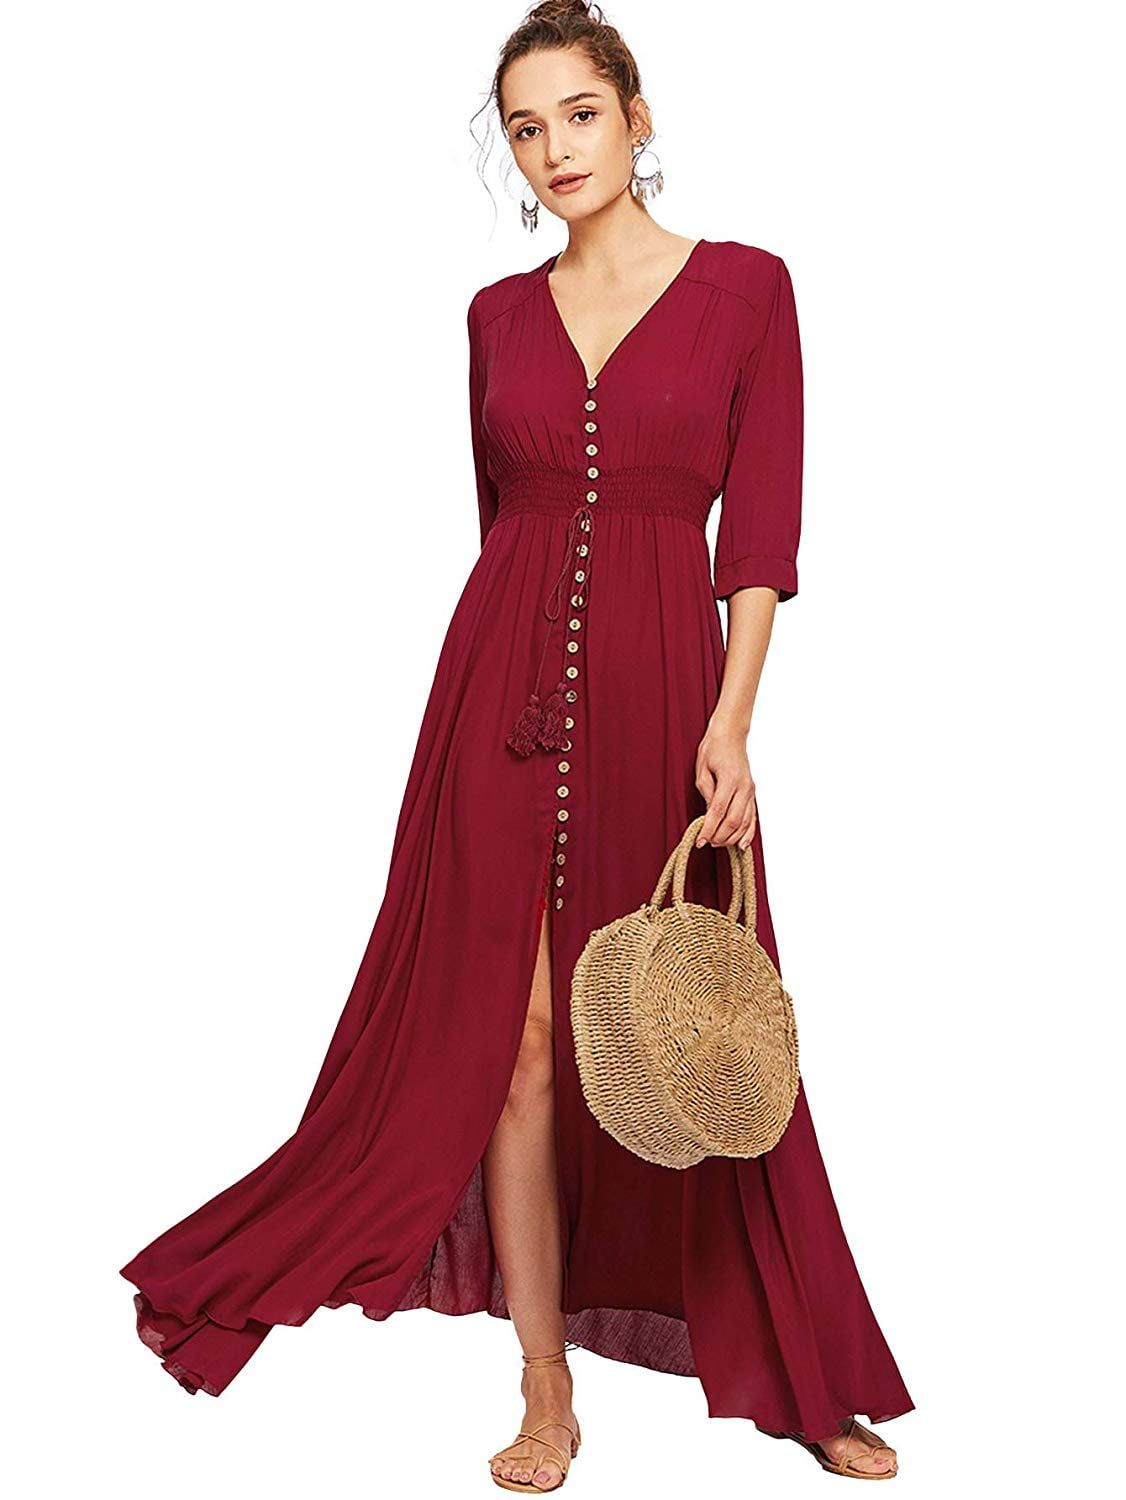 Customers are buying this 30 maxi dress from amazon like